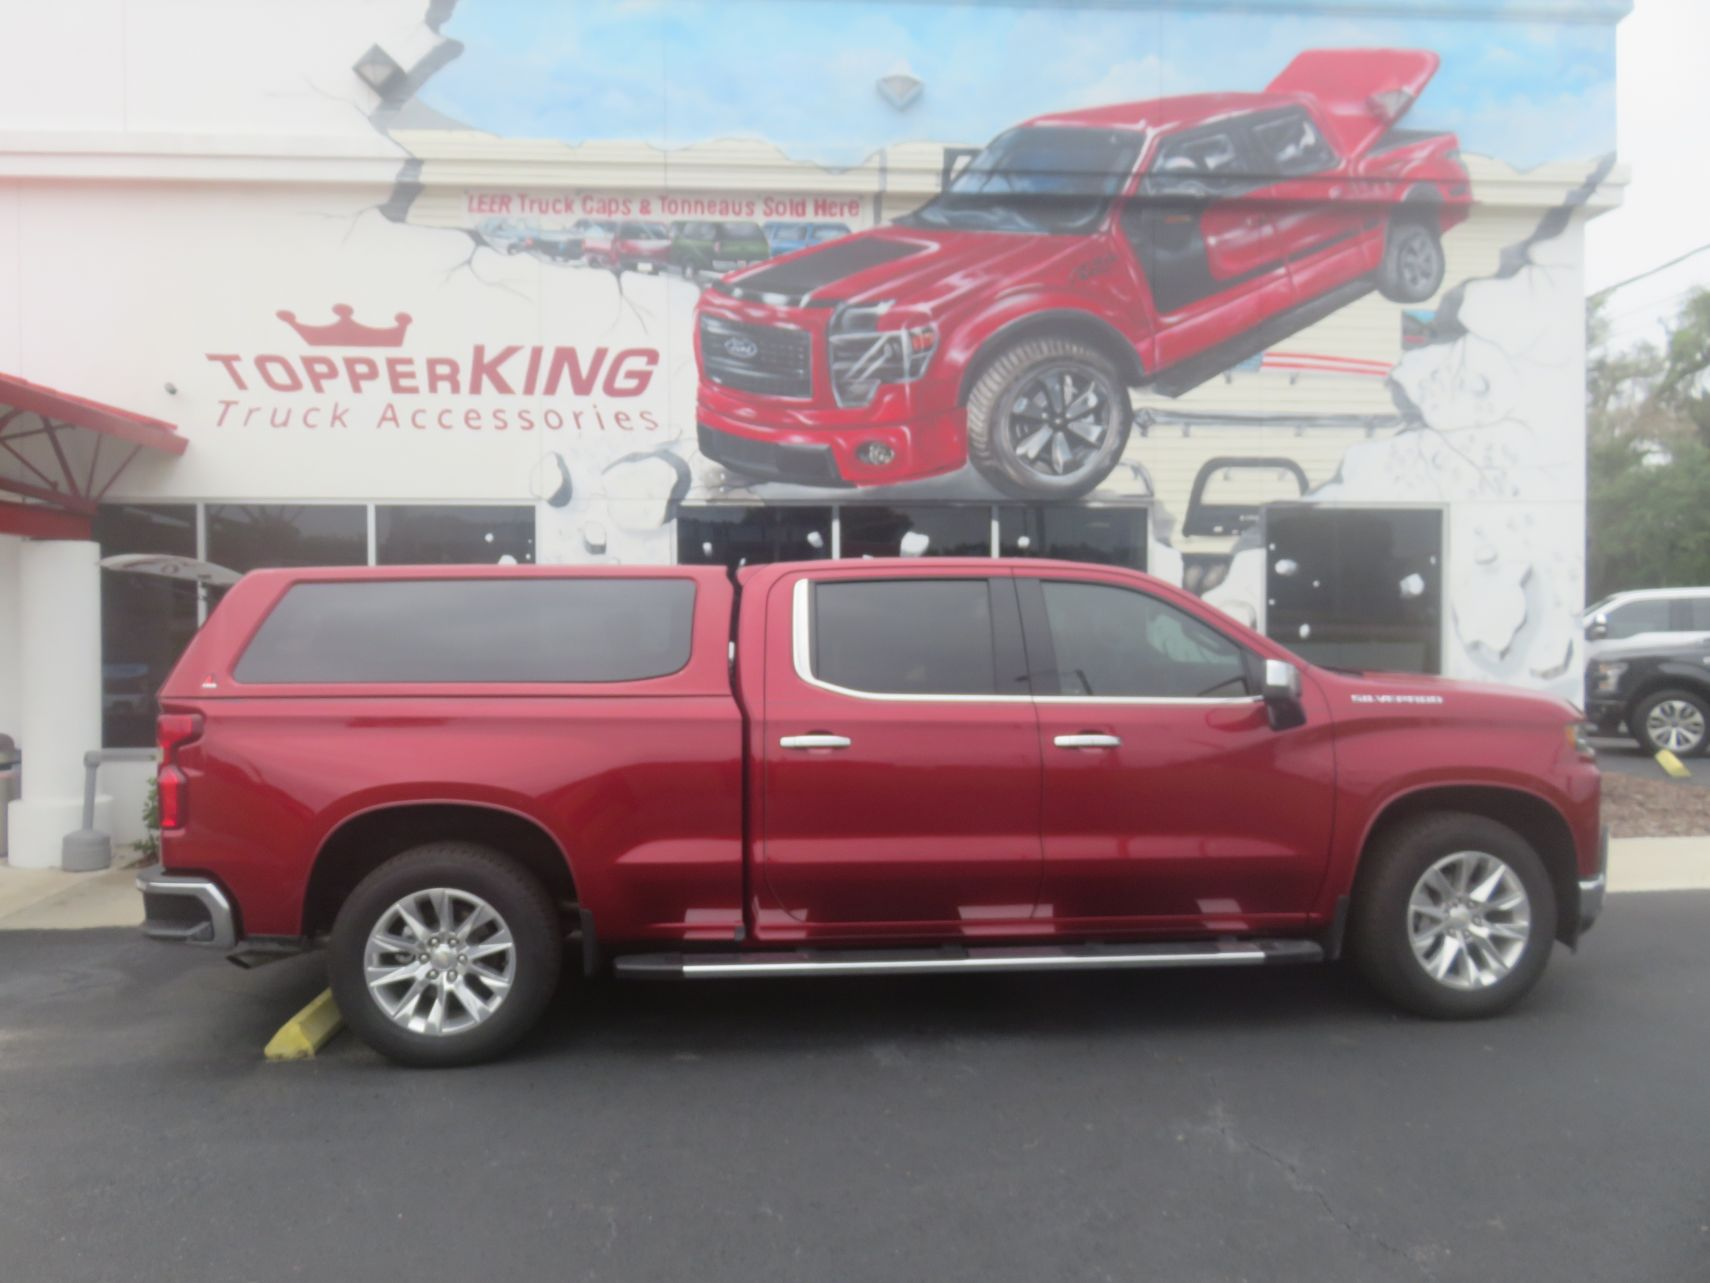 2019 Chevy Silverado with LEER 100XQ, Nerf Bars, Hitch, and Tint by TopperKING in Brandon, FL 813-689-2449 or Clearwater, FL 727-530-9066. Call today!